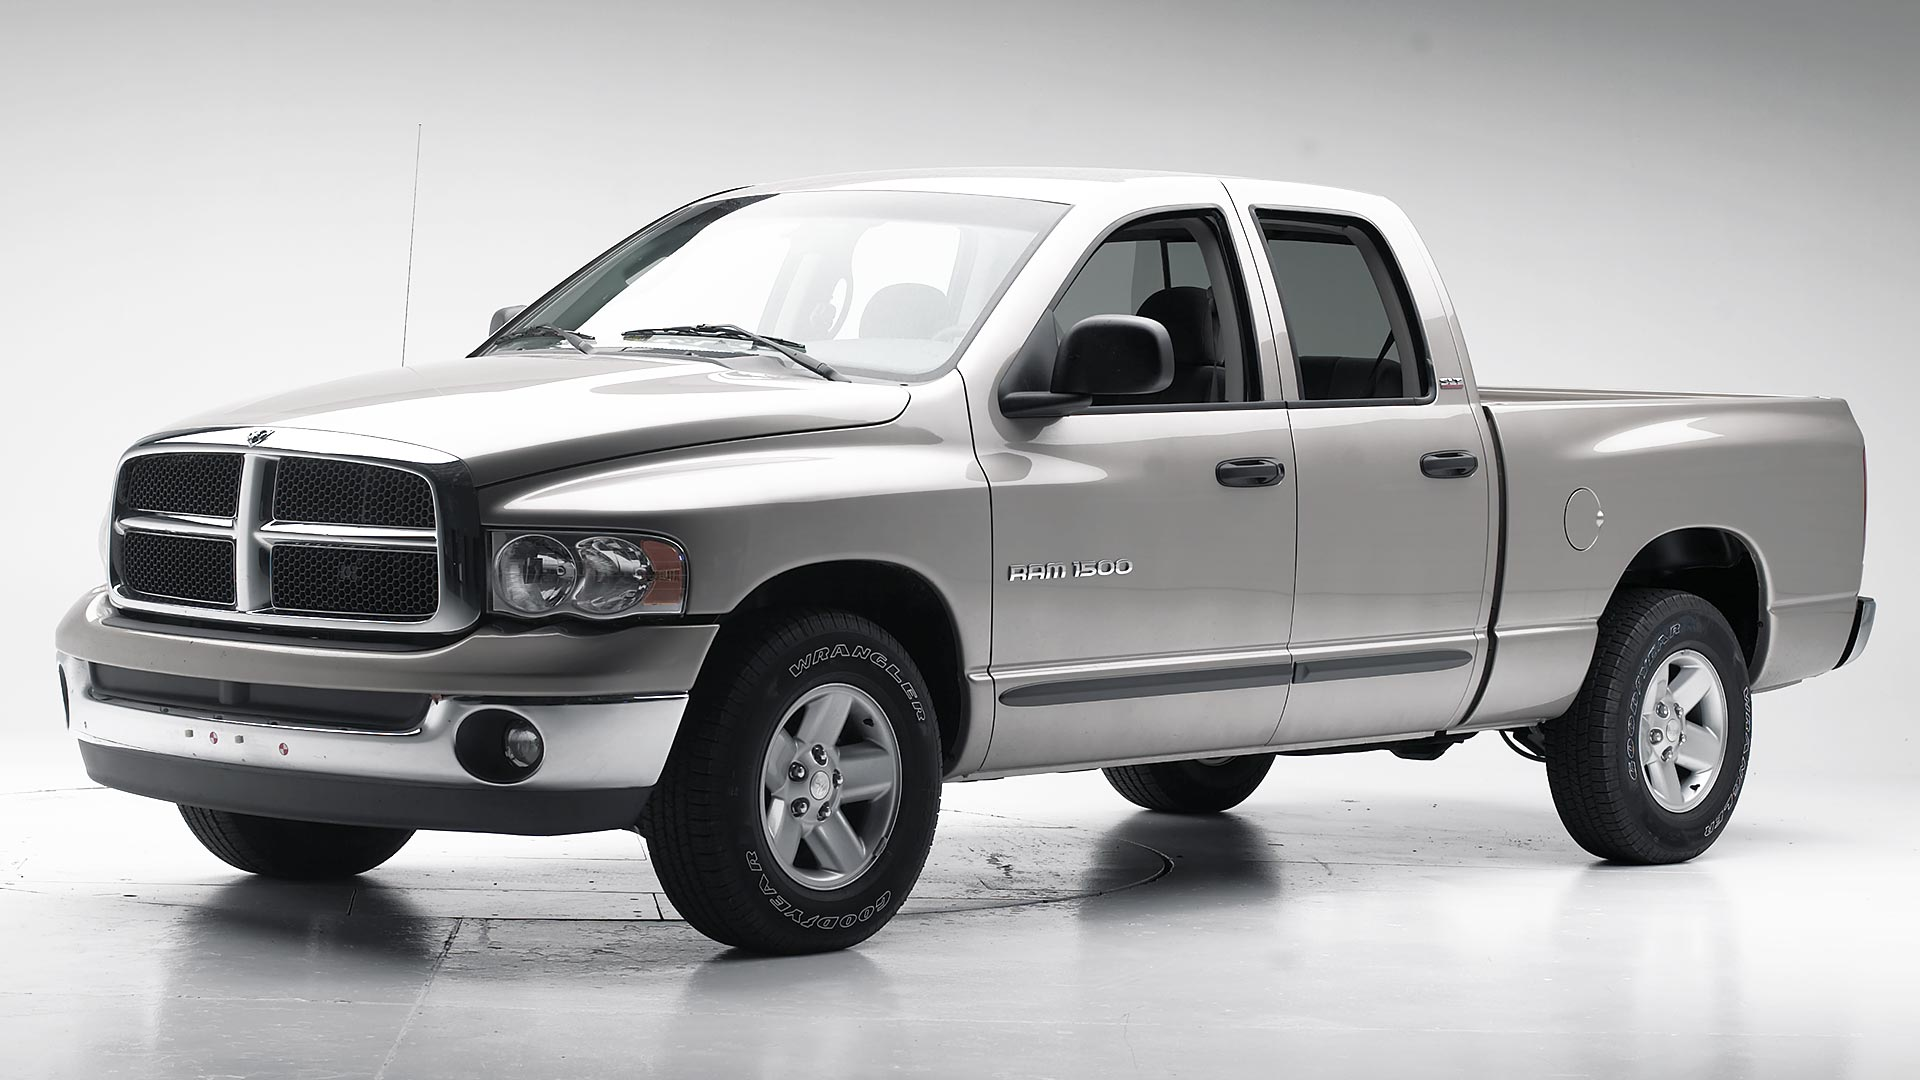 2004 Dodge Ram 1500 Extended cab pickup